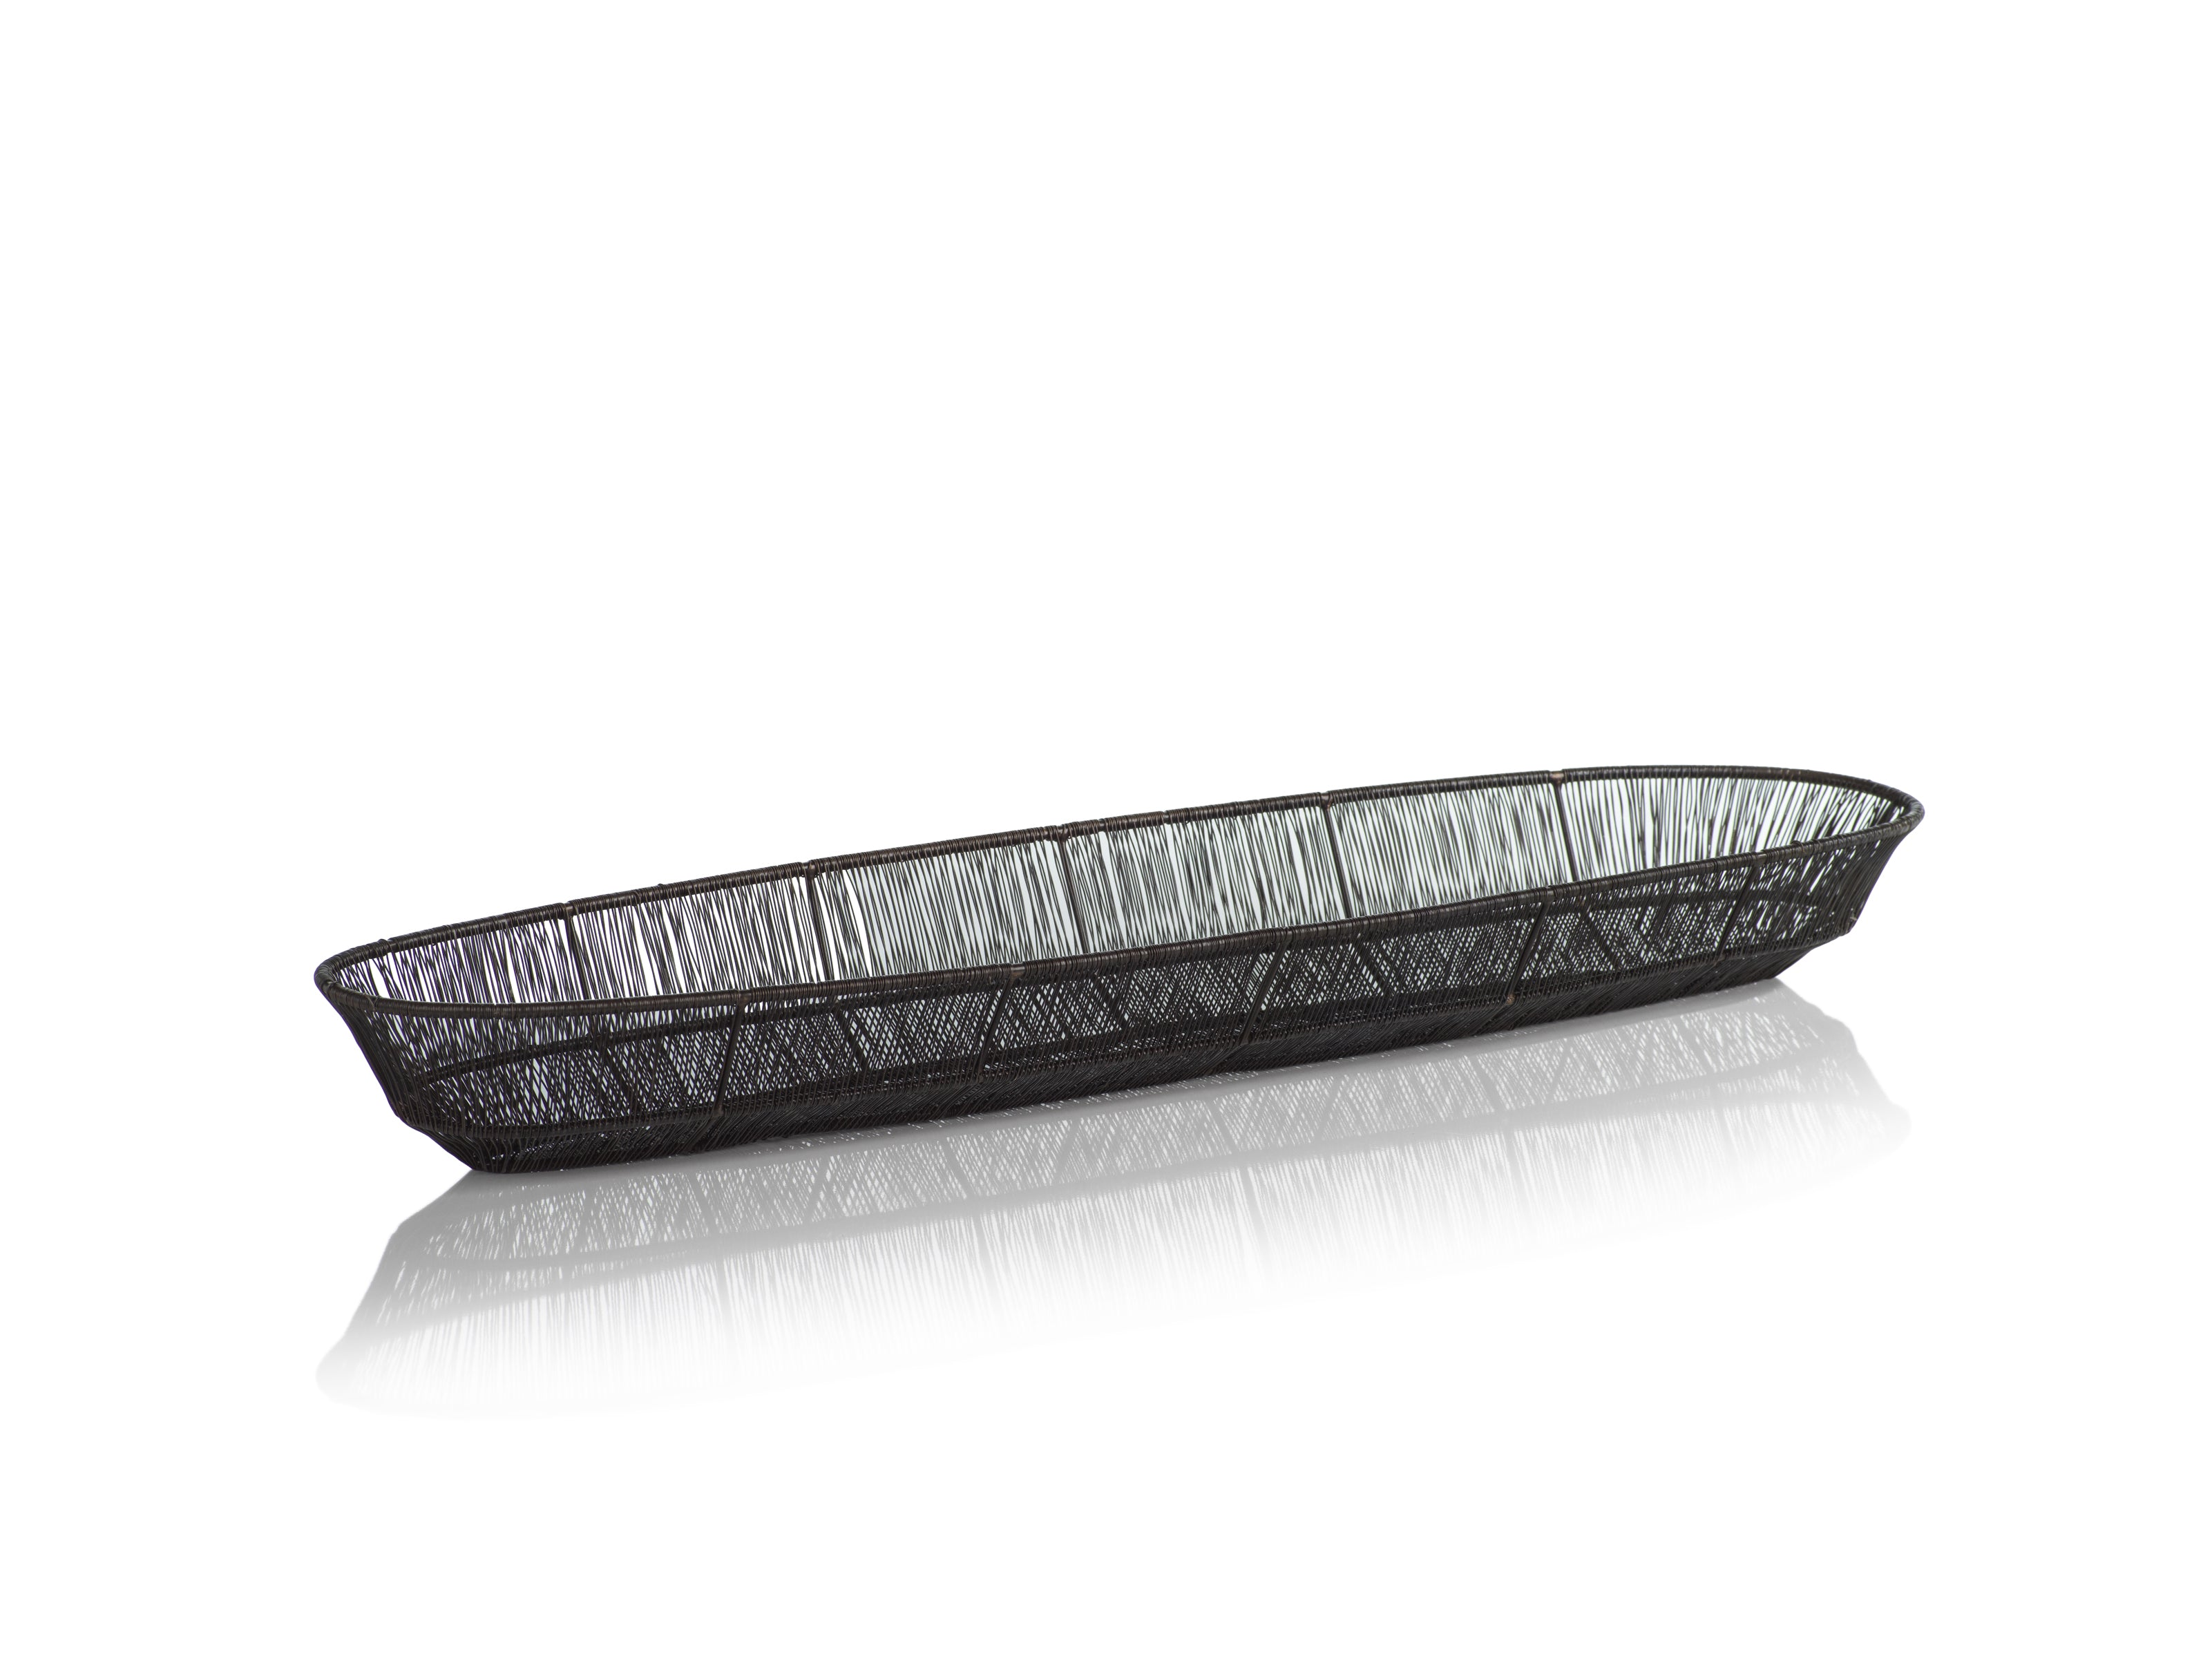 Dakar Twisted Wire Oval Baskets - CARLYLE AVENUE